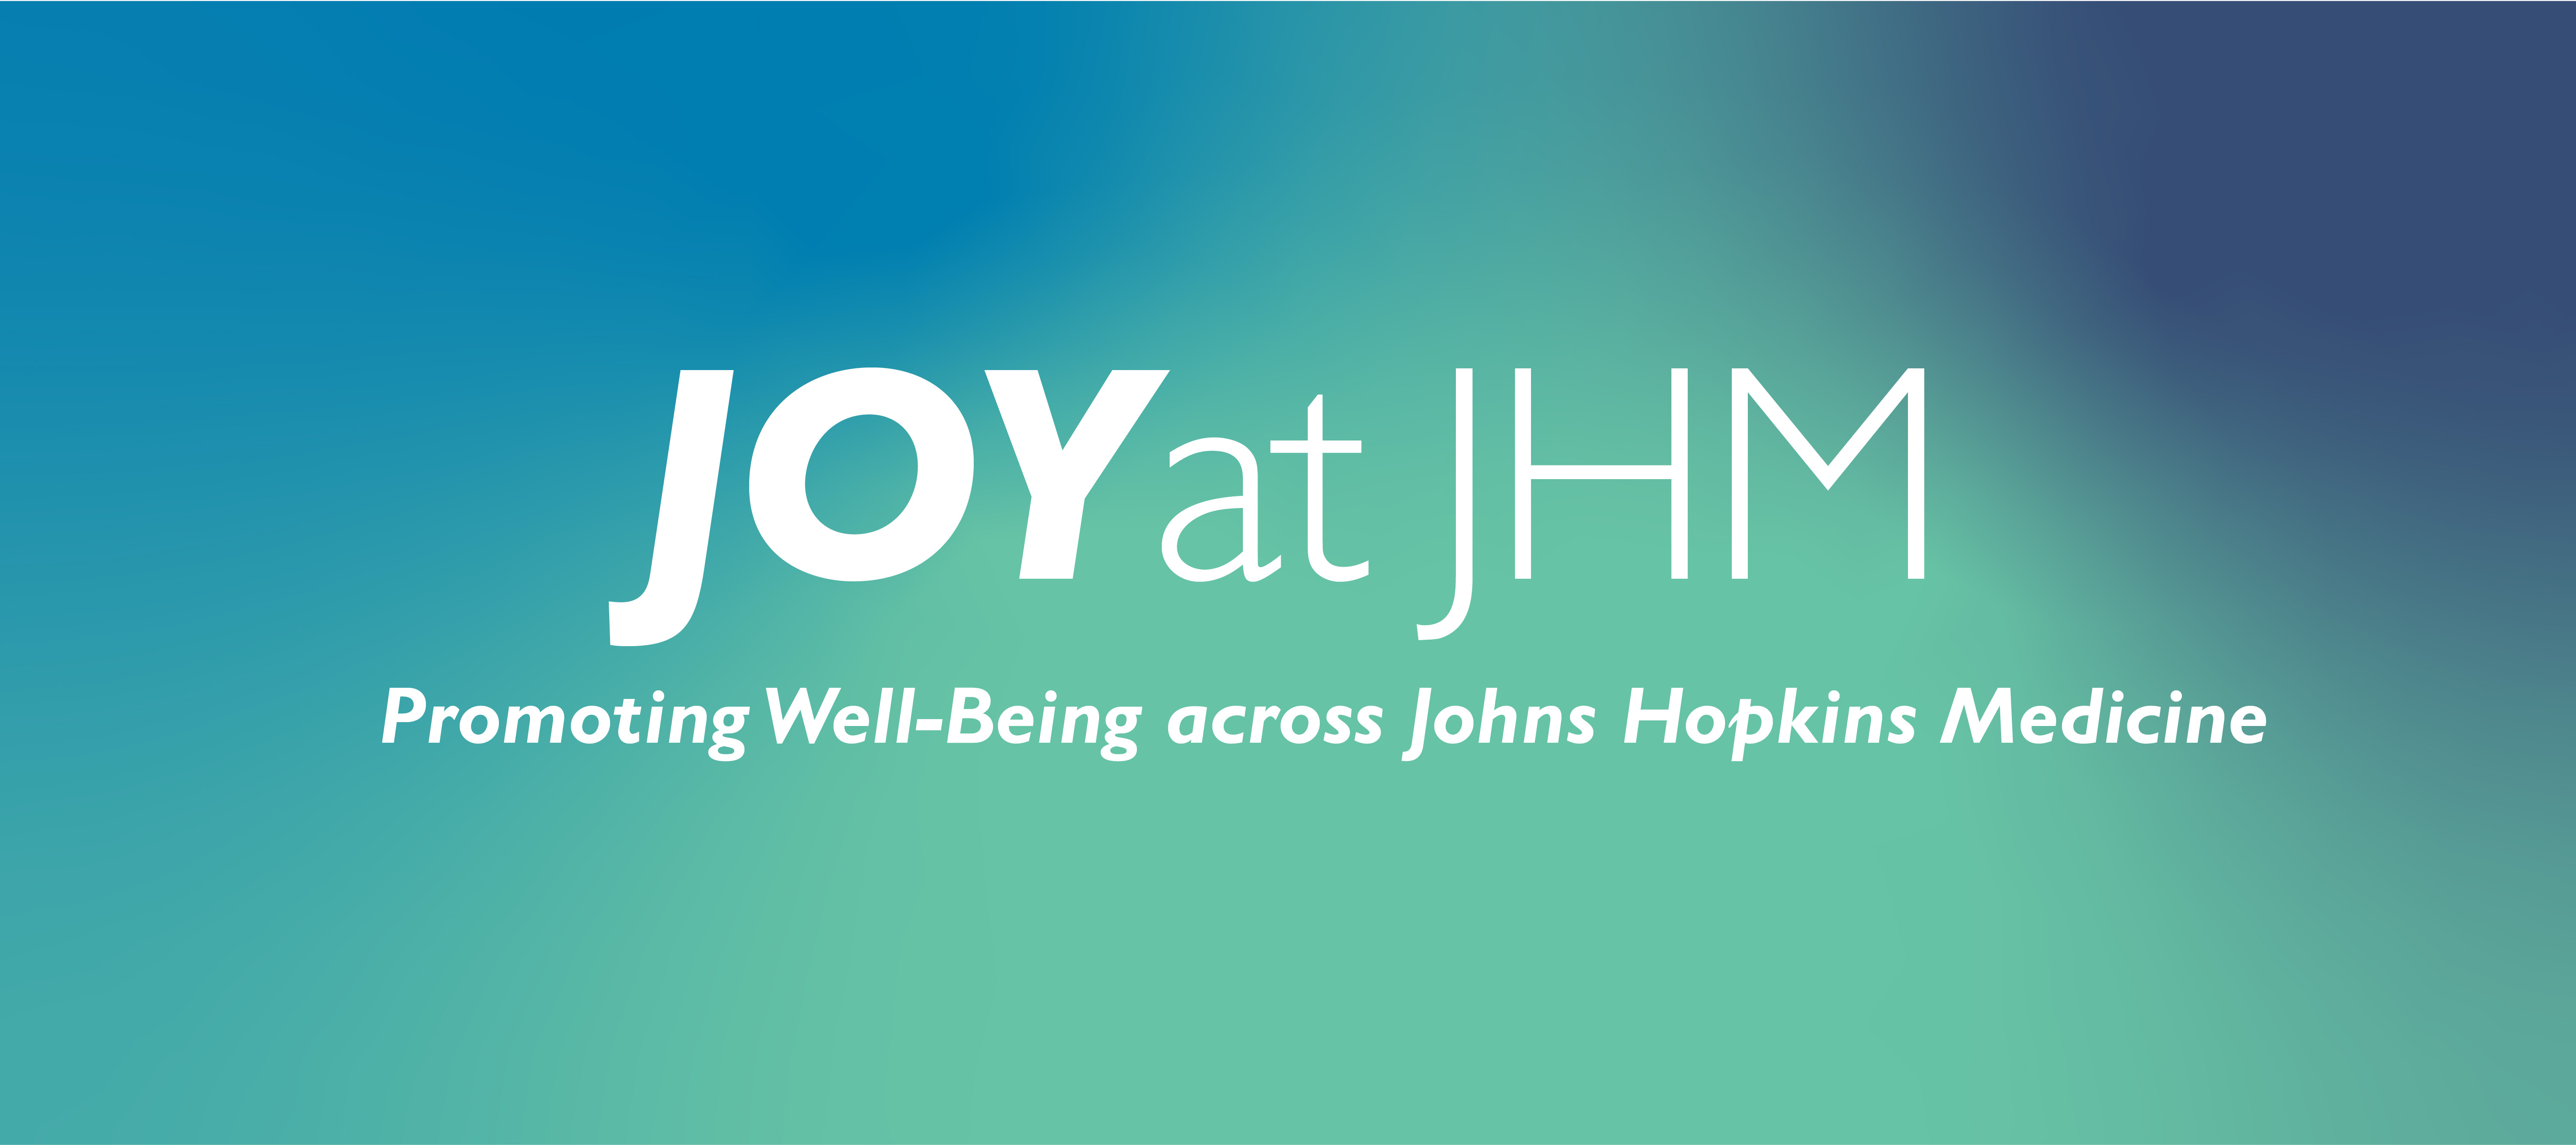 Joy at JHM typeface with a smaller line stating, Promoting Well-Being across Johns Hopkins Medicine